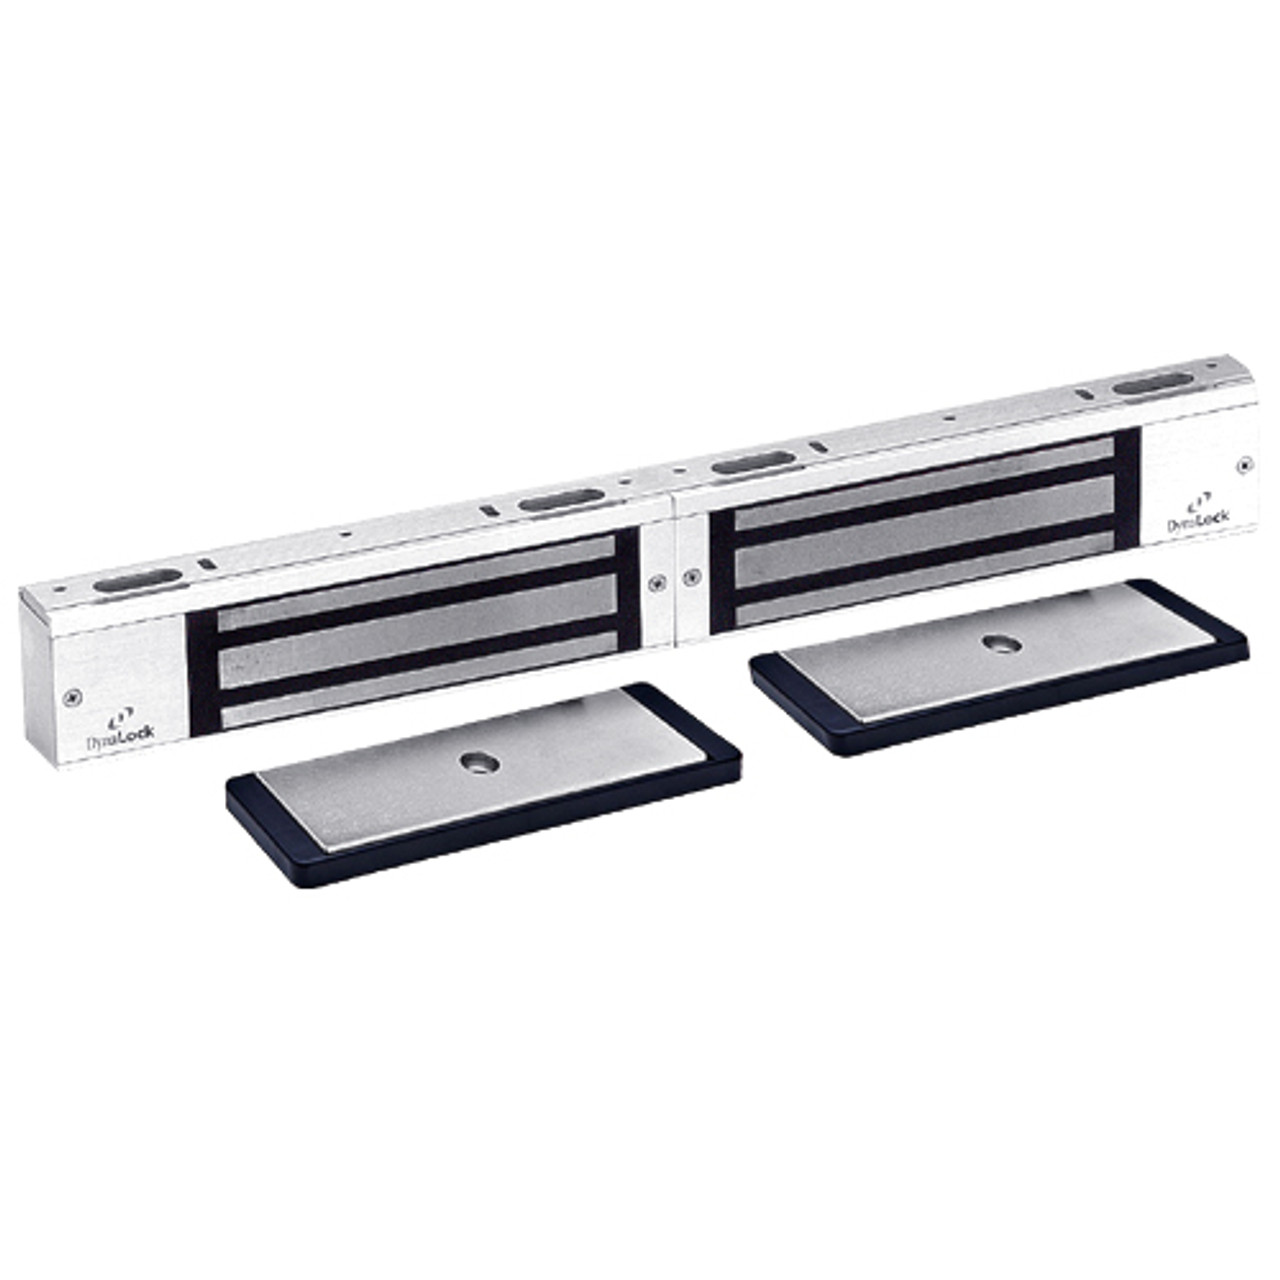 3002TJ32-US26-DSM2 DynaLock 3000 Series 1500 LBs Double Electromagnetic Lock for Inswing Door with DSM in Bright Chrome